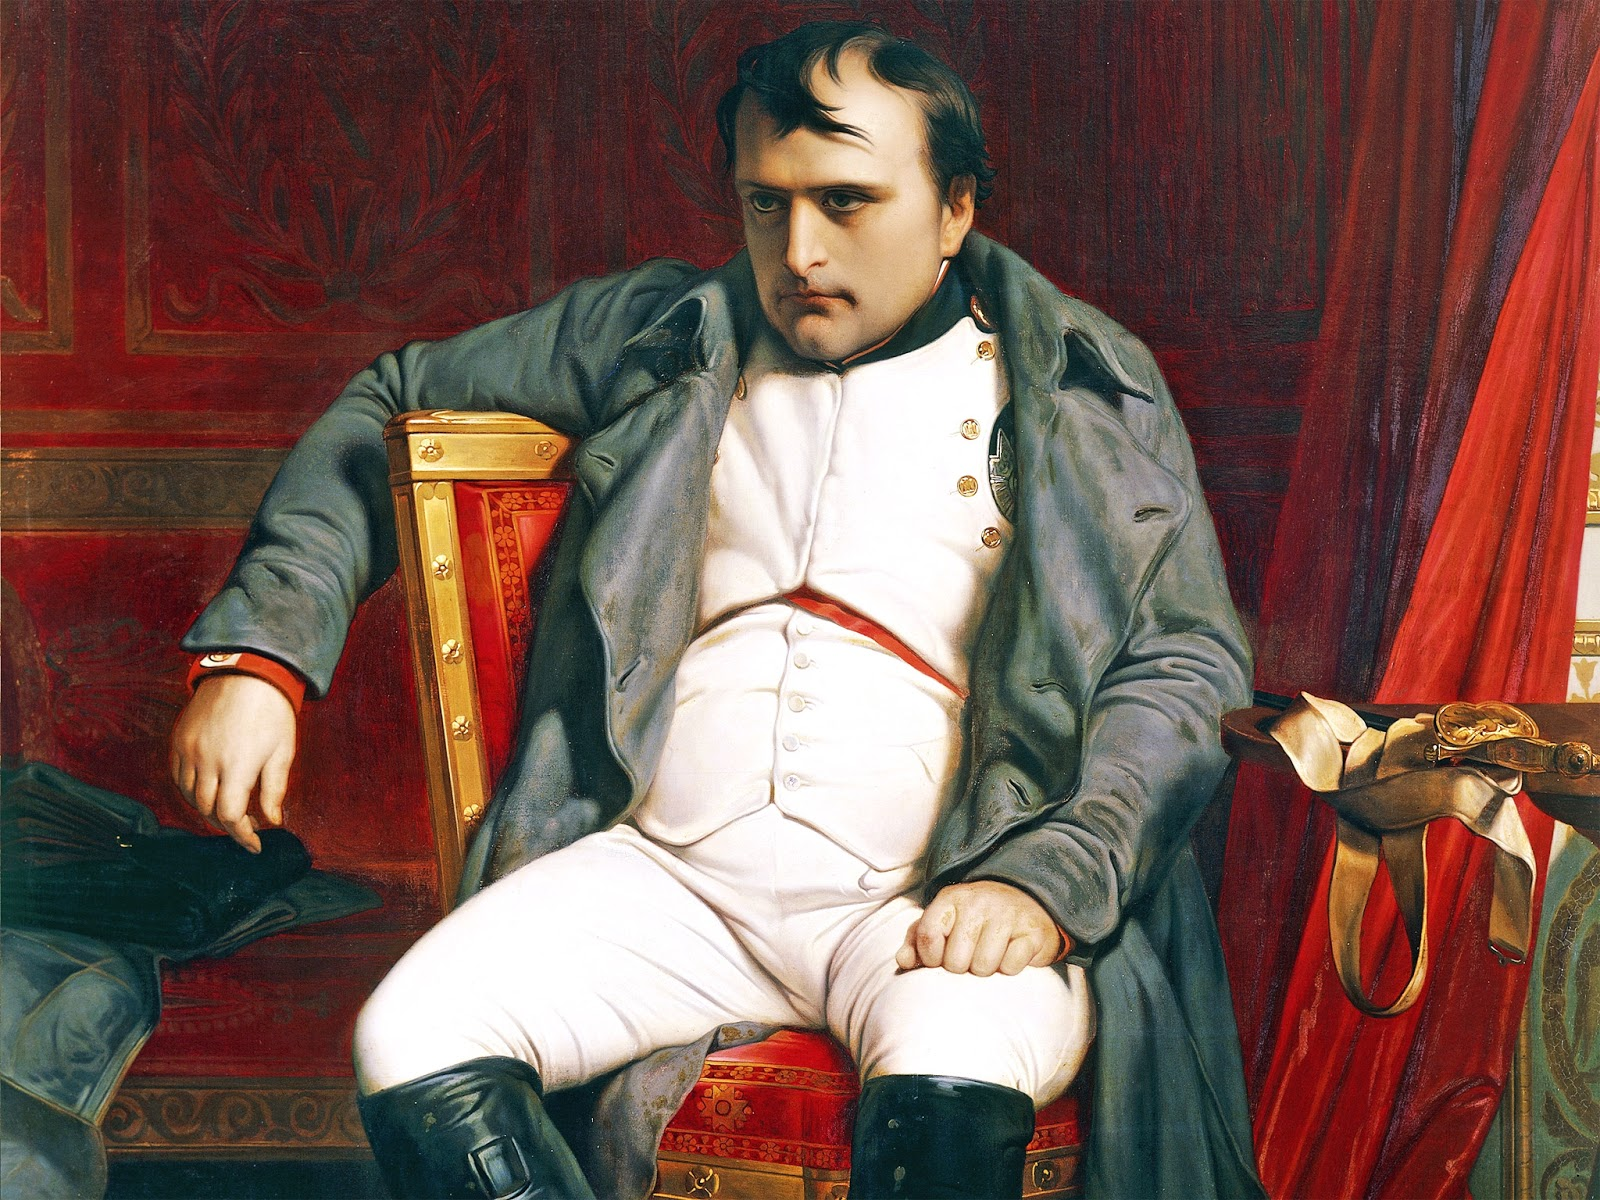 a biography and life work of napoleon bonaparte a french war leader Napoleon was a great military leader and the emperor of france, after the french revolution read a brief biography and history of napoleon bonaparte.